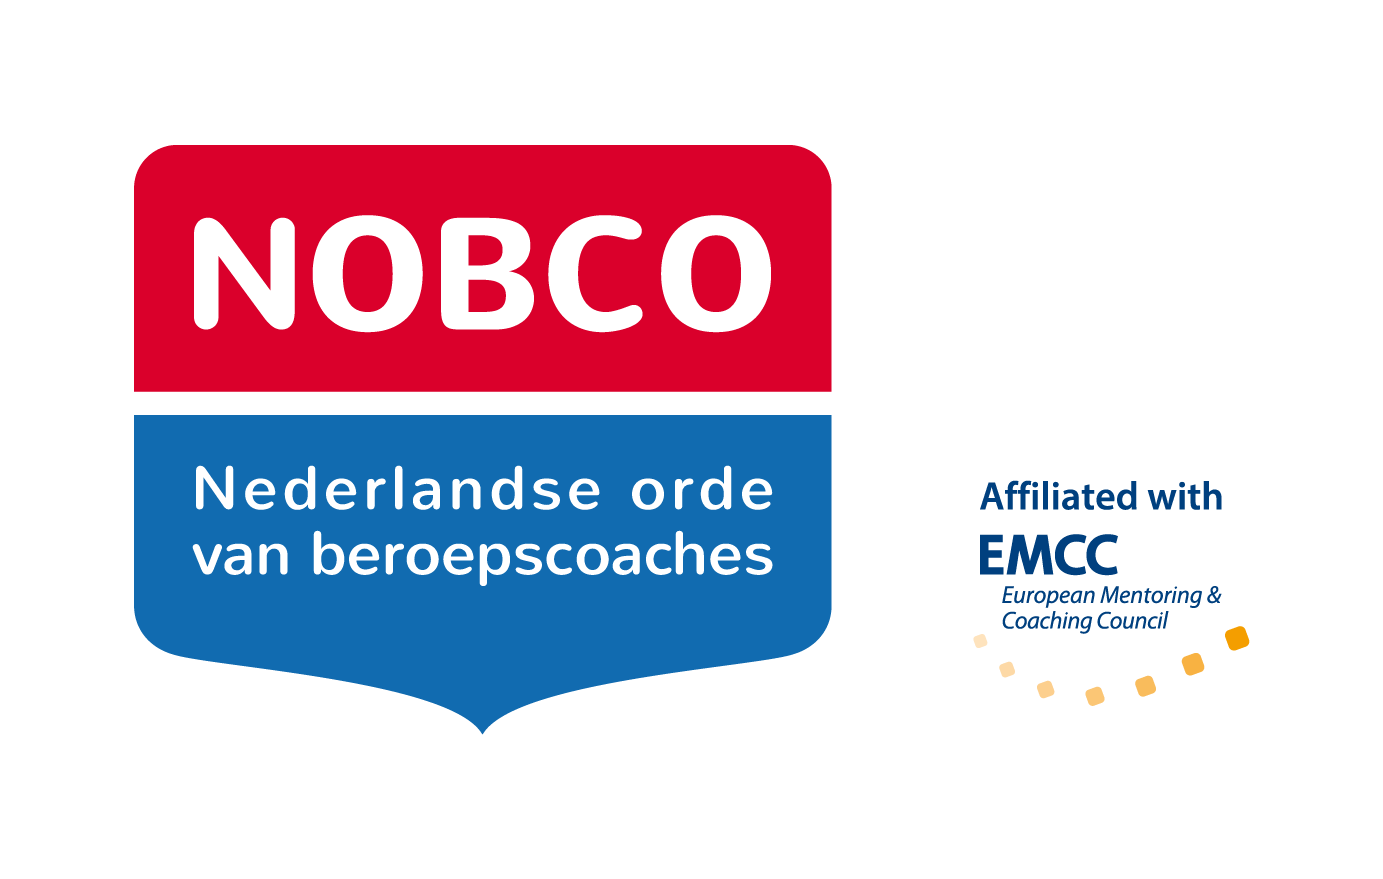 logo-nobco-affiliated-with-emcc-rgb